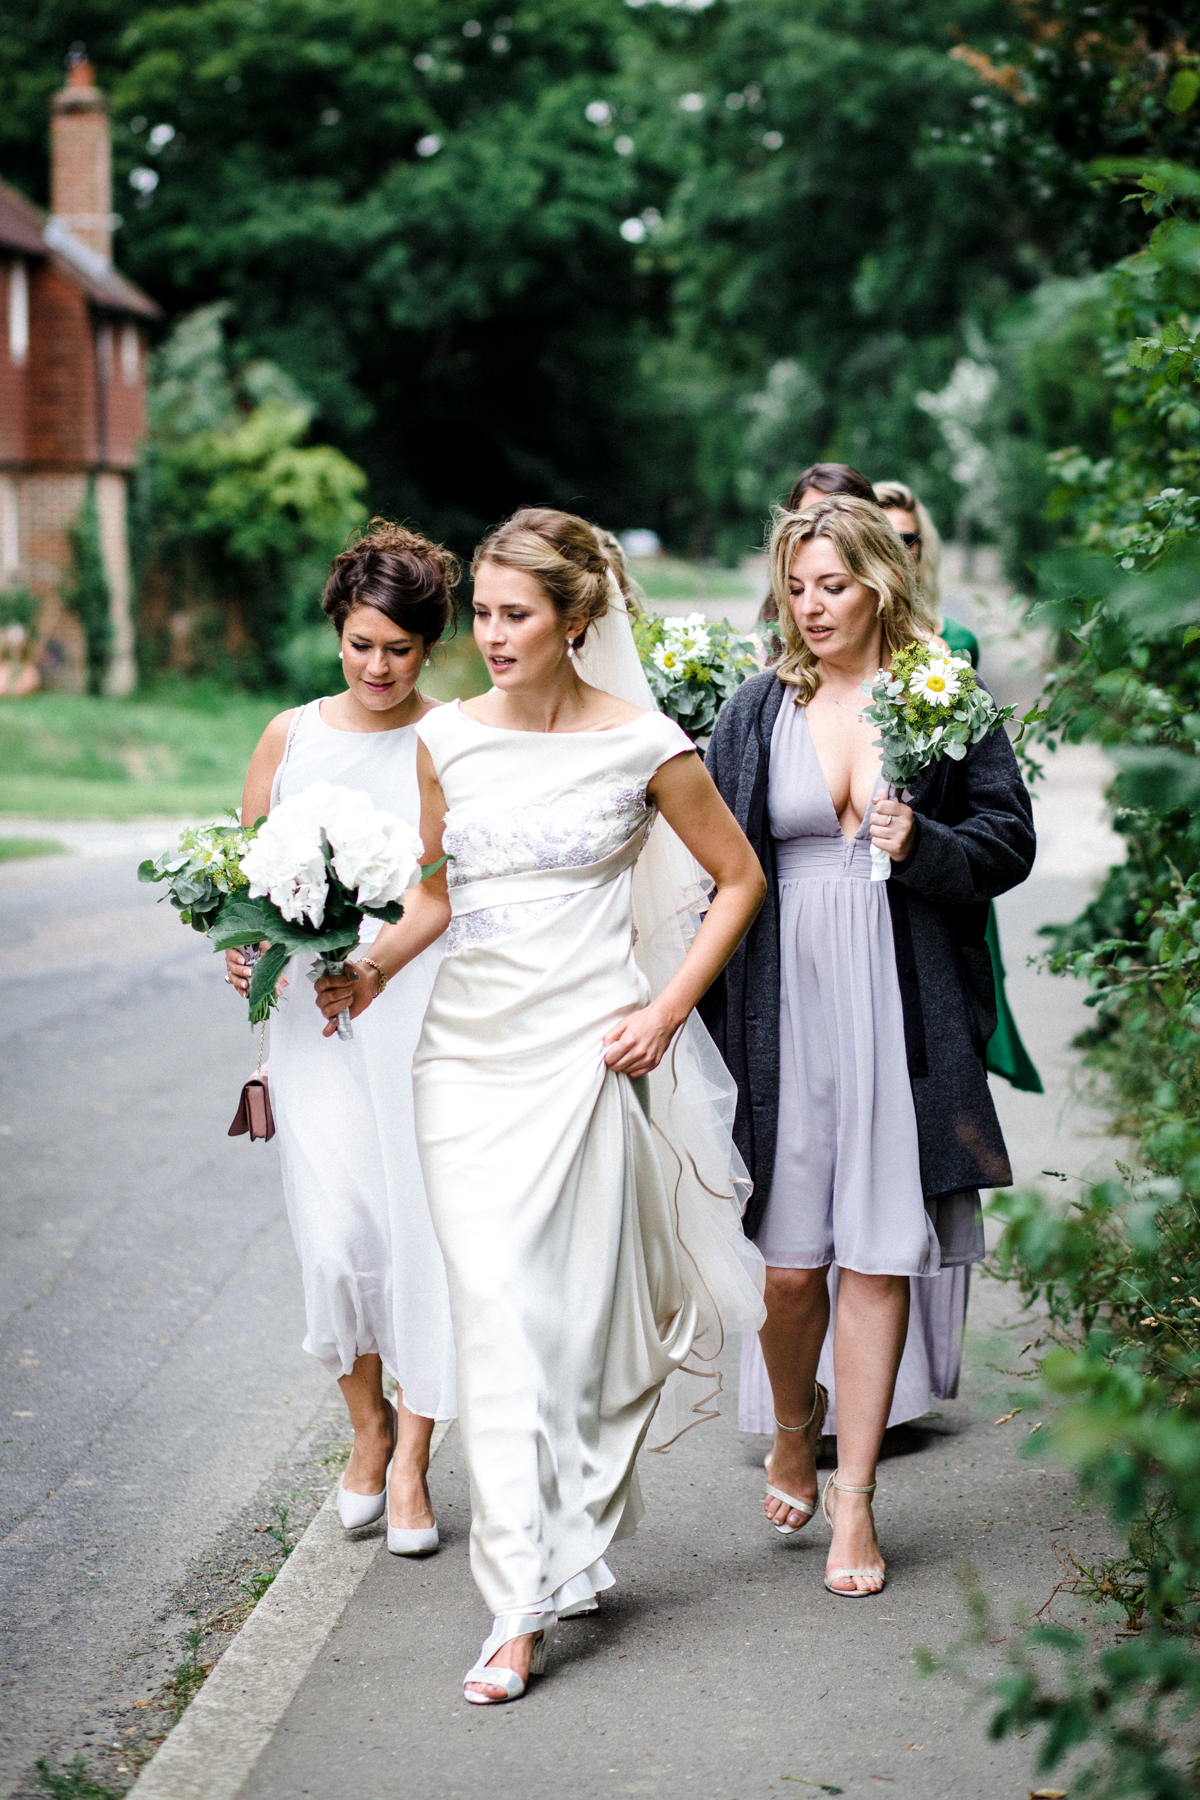 Barcombe village hall wedding Eas Sussex Michael Stanton Photography 12